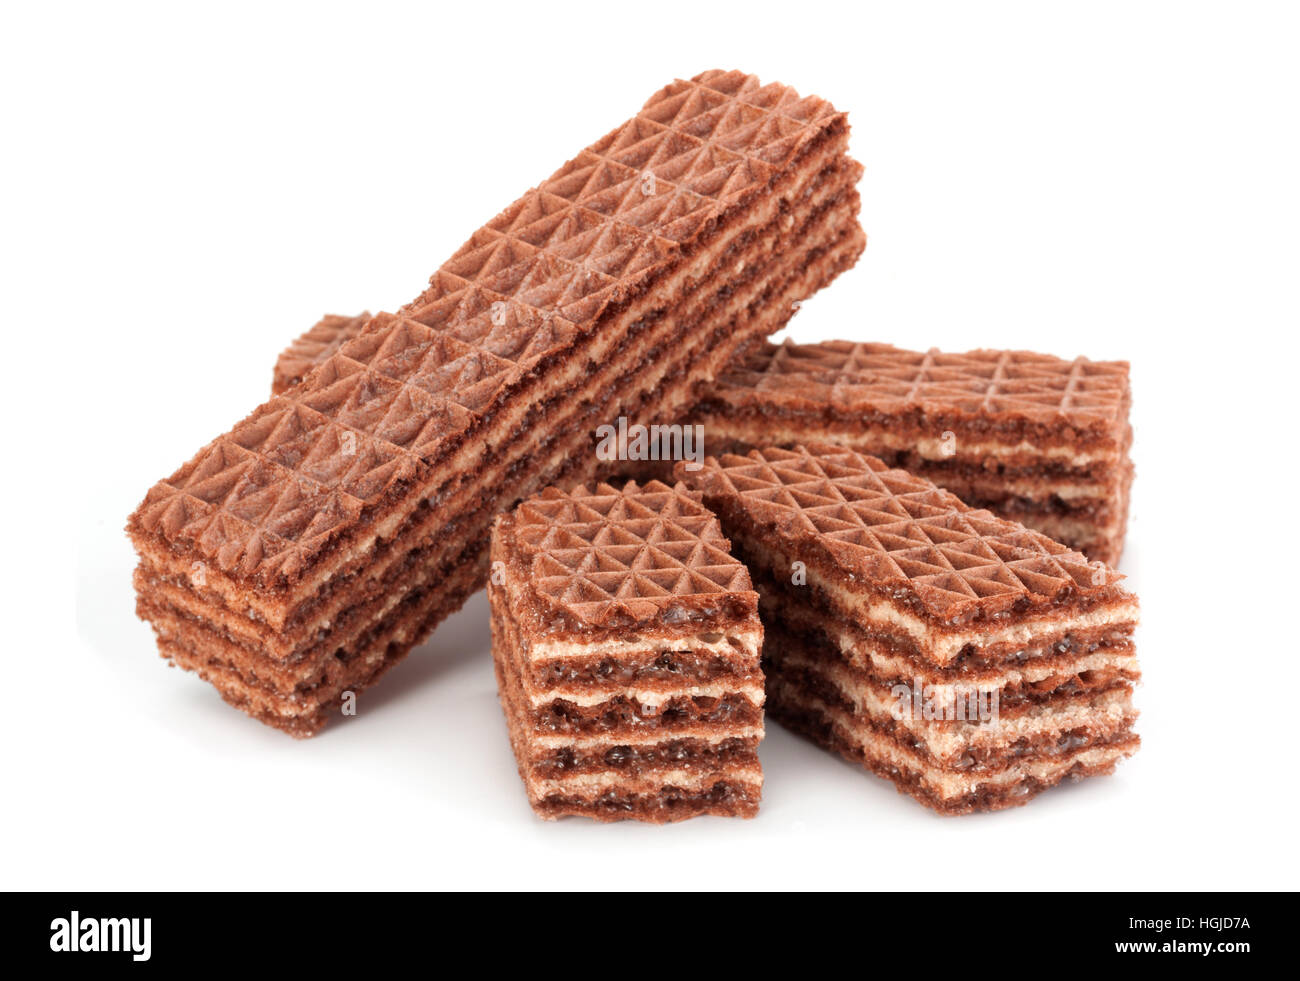 Brown wafer closeup isolated on white background - Stock Image